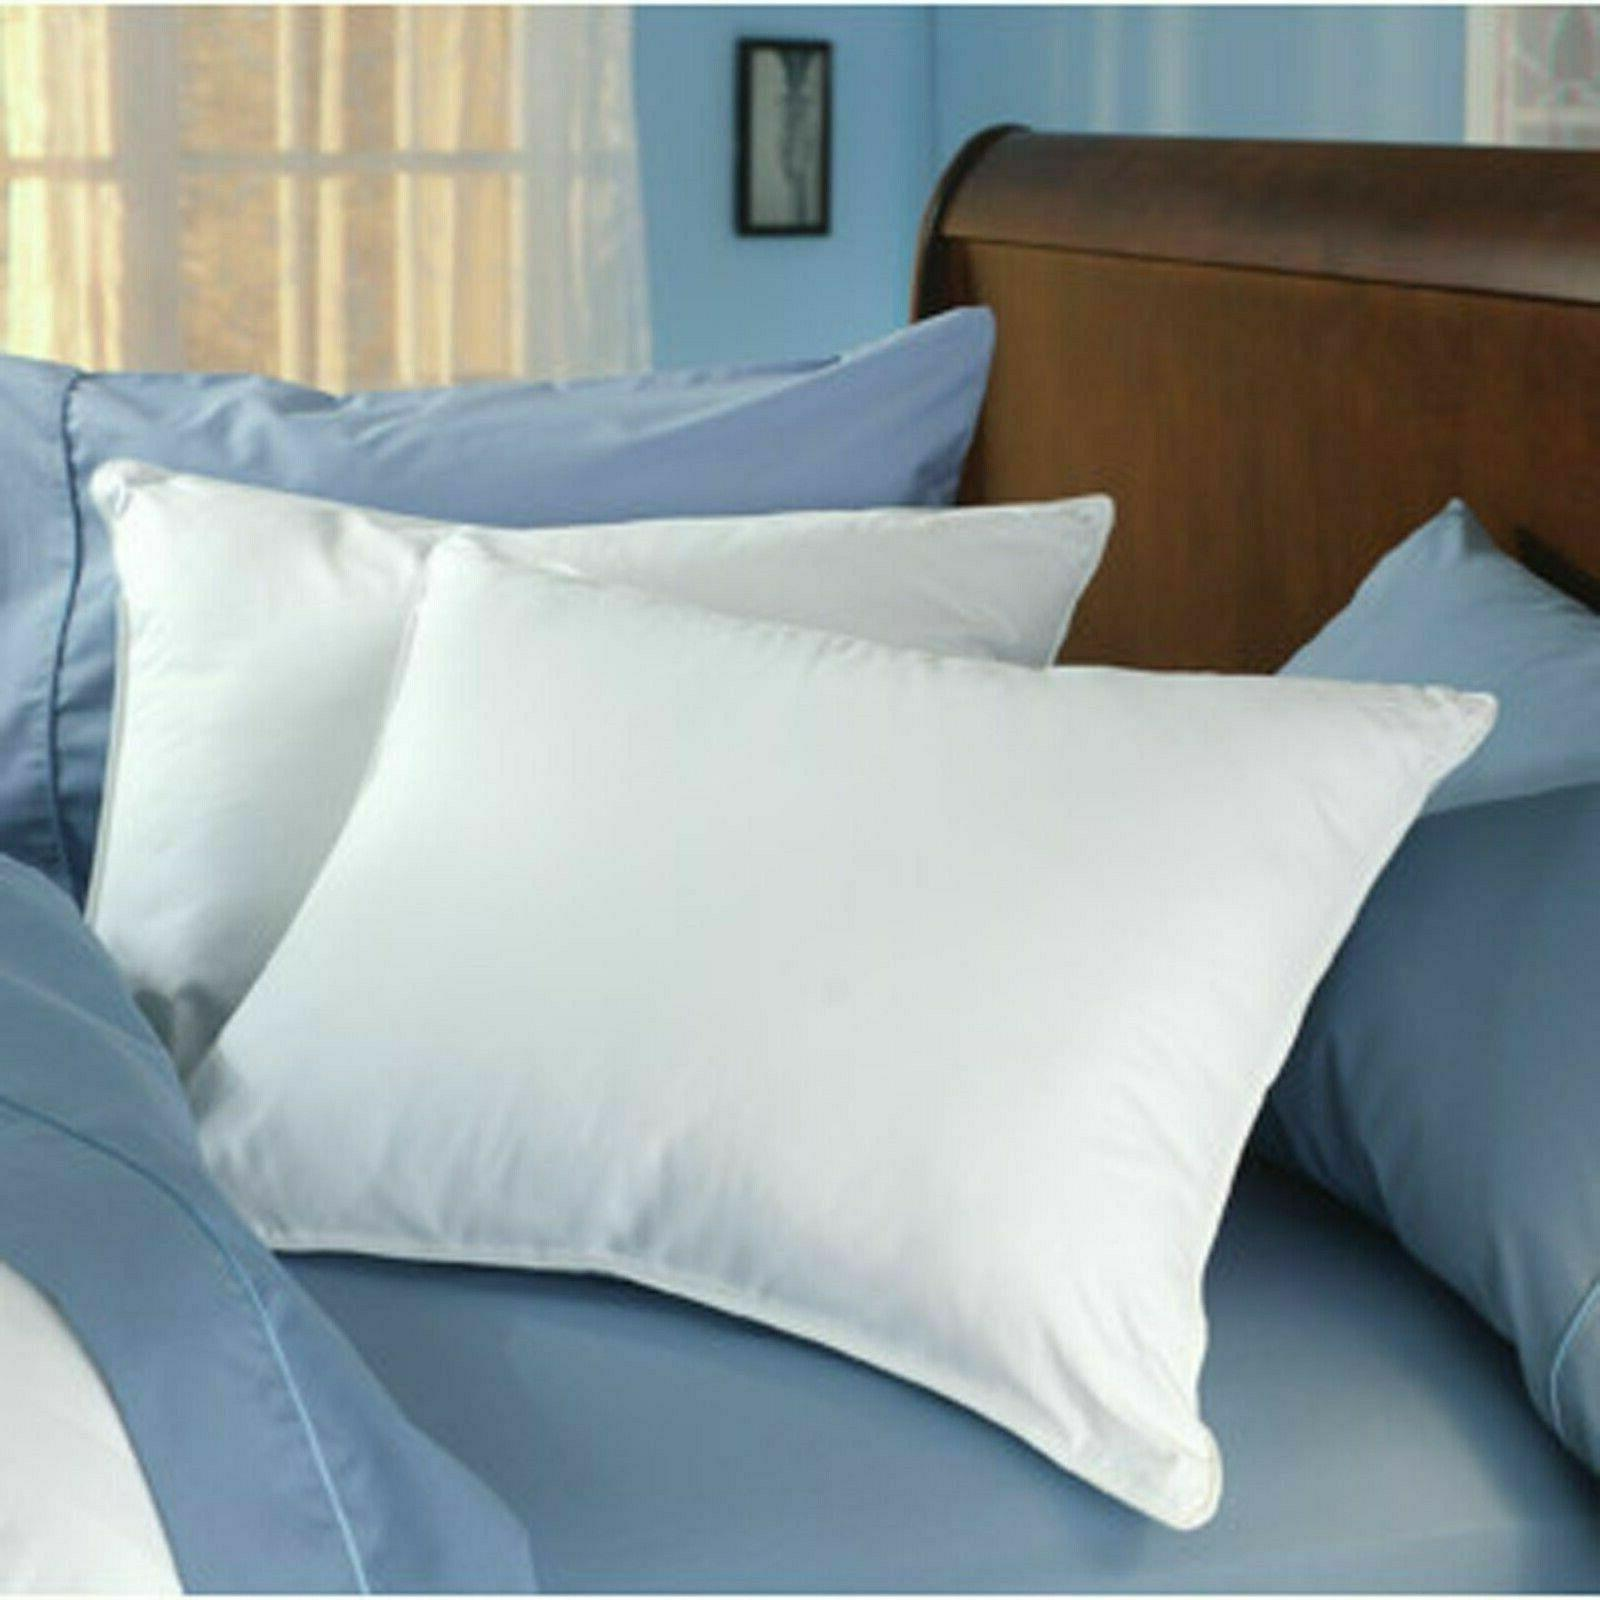 set of 2 classic pillows found in